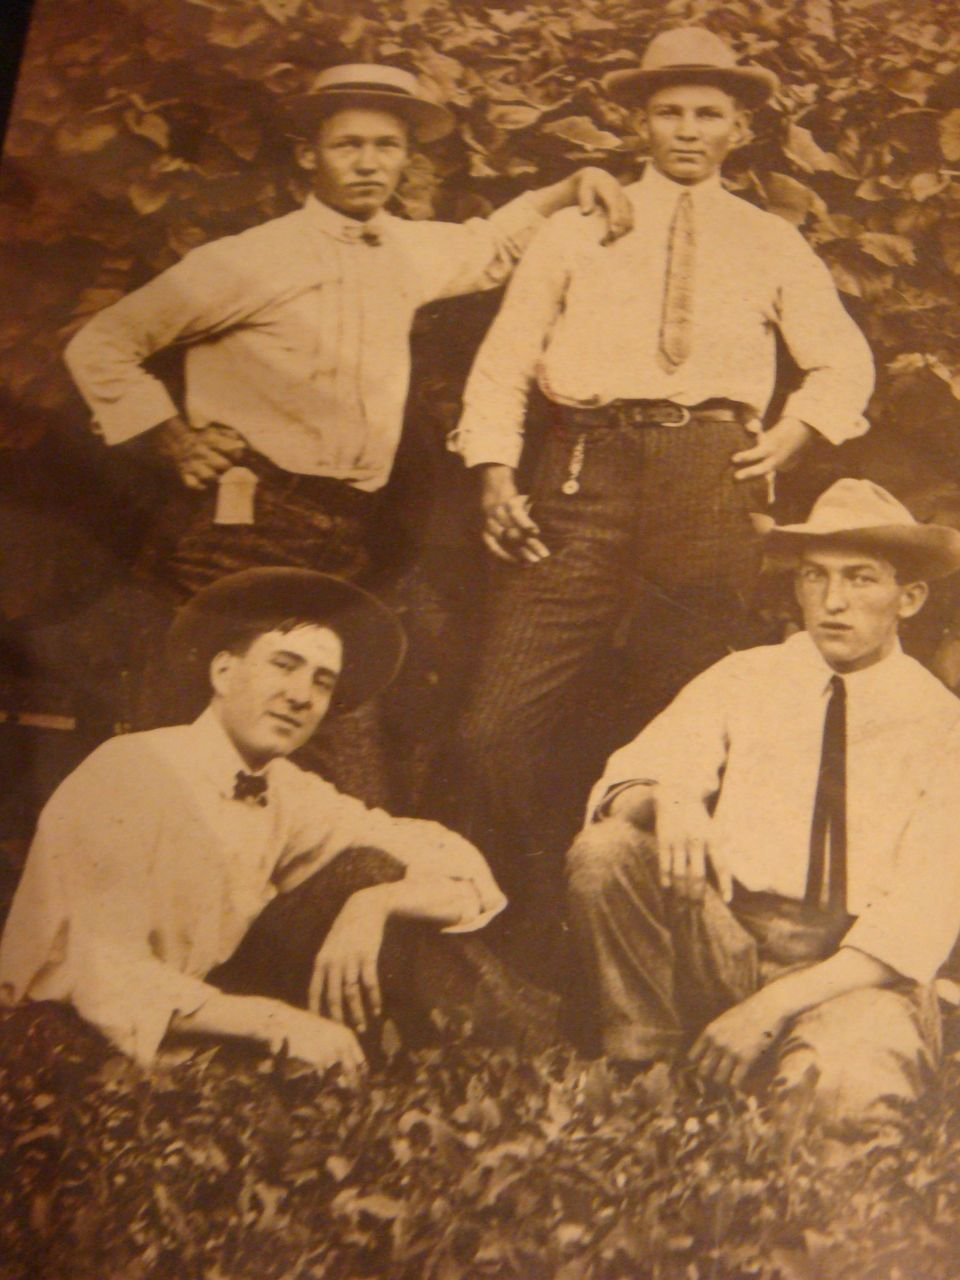 4 Cool Dudes Look at Those Hats and SKINNY Ties! Early 1900's Photo